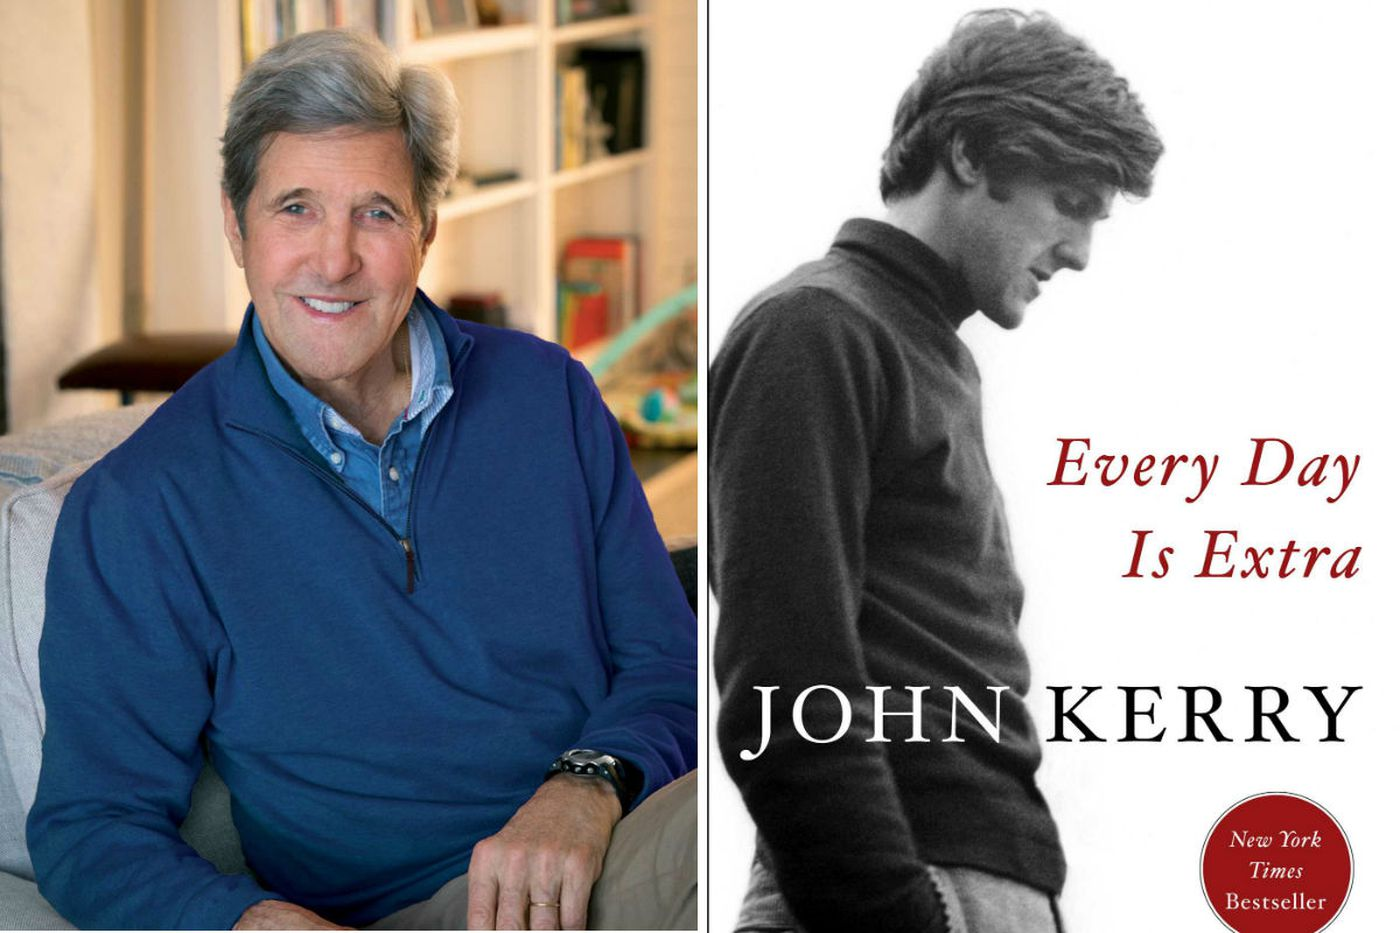 John Kerry's 'Every Day Is Extra': Skimming the surface, with lack of insight